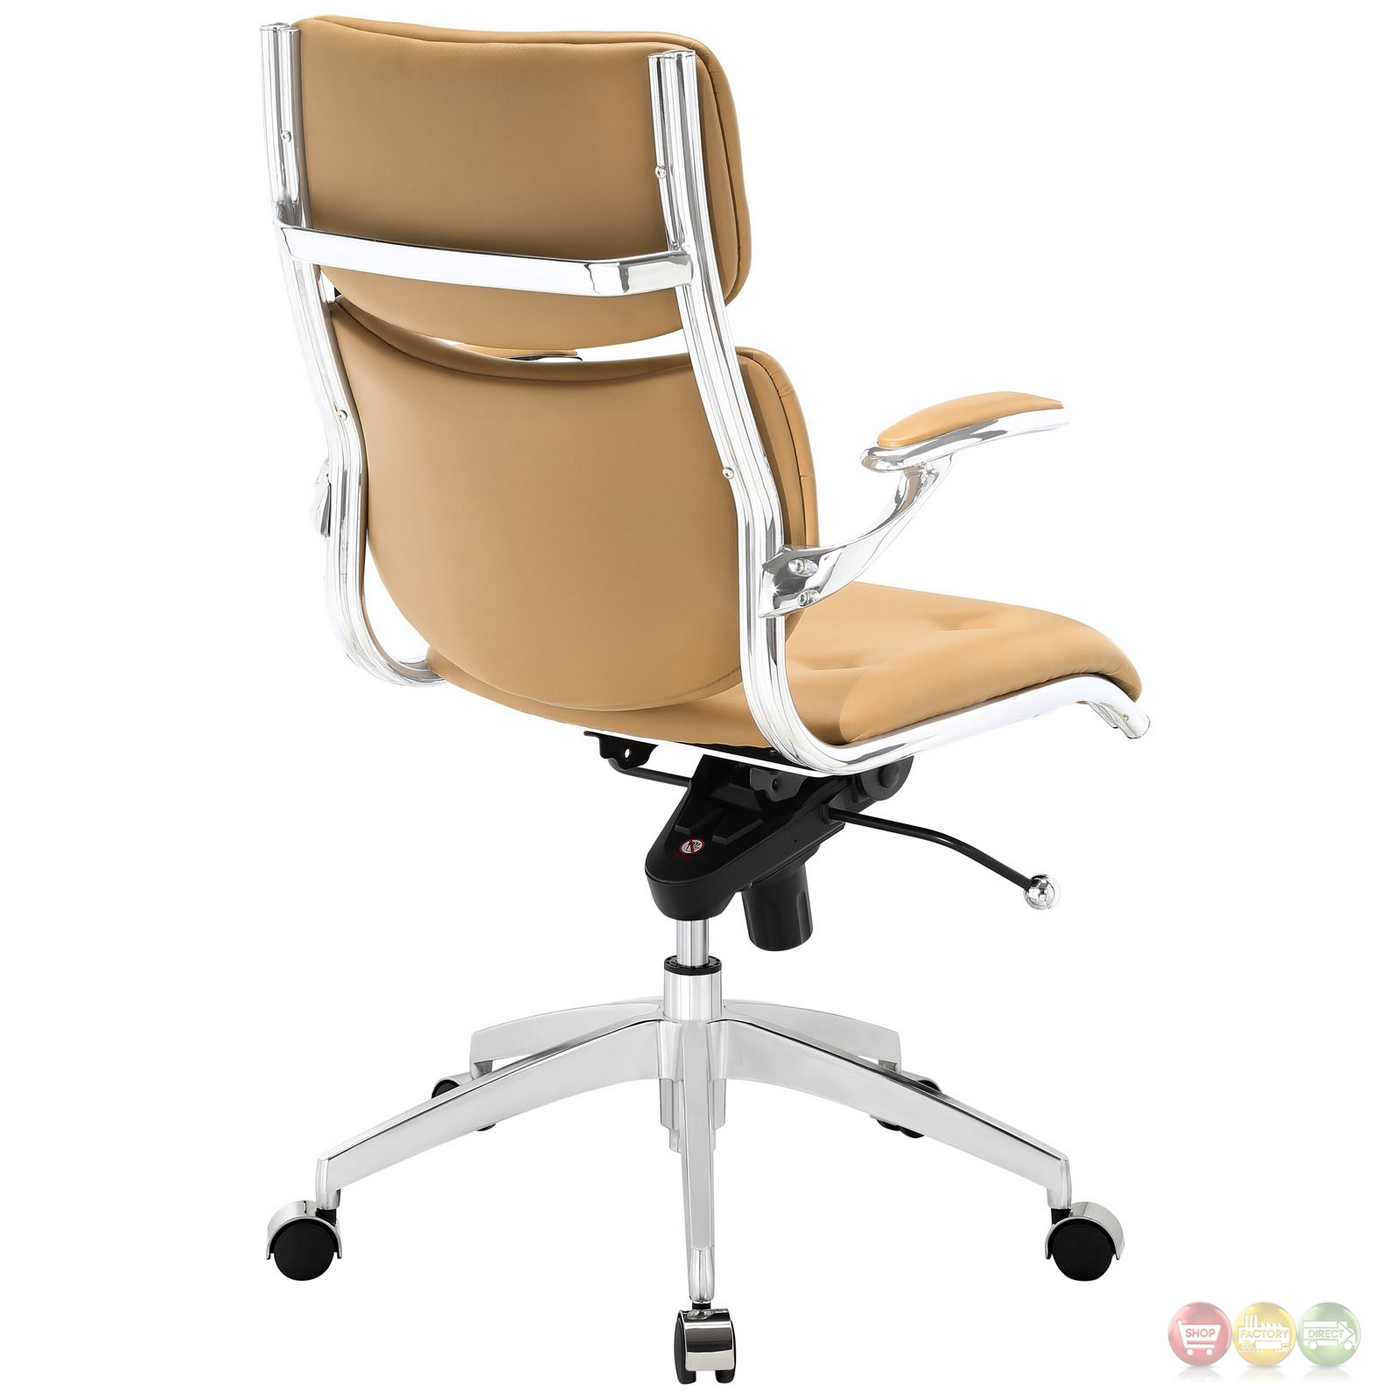 Tan Office Chair Push Modern Leatherette Upholstered Mid Back Office Chair Tan